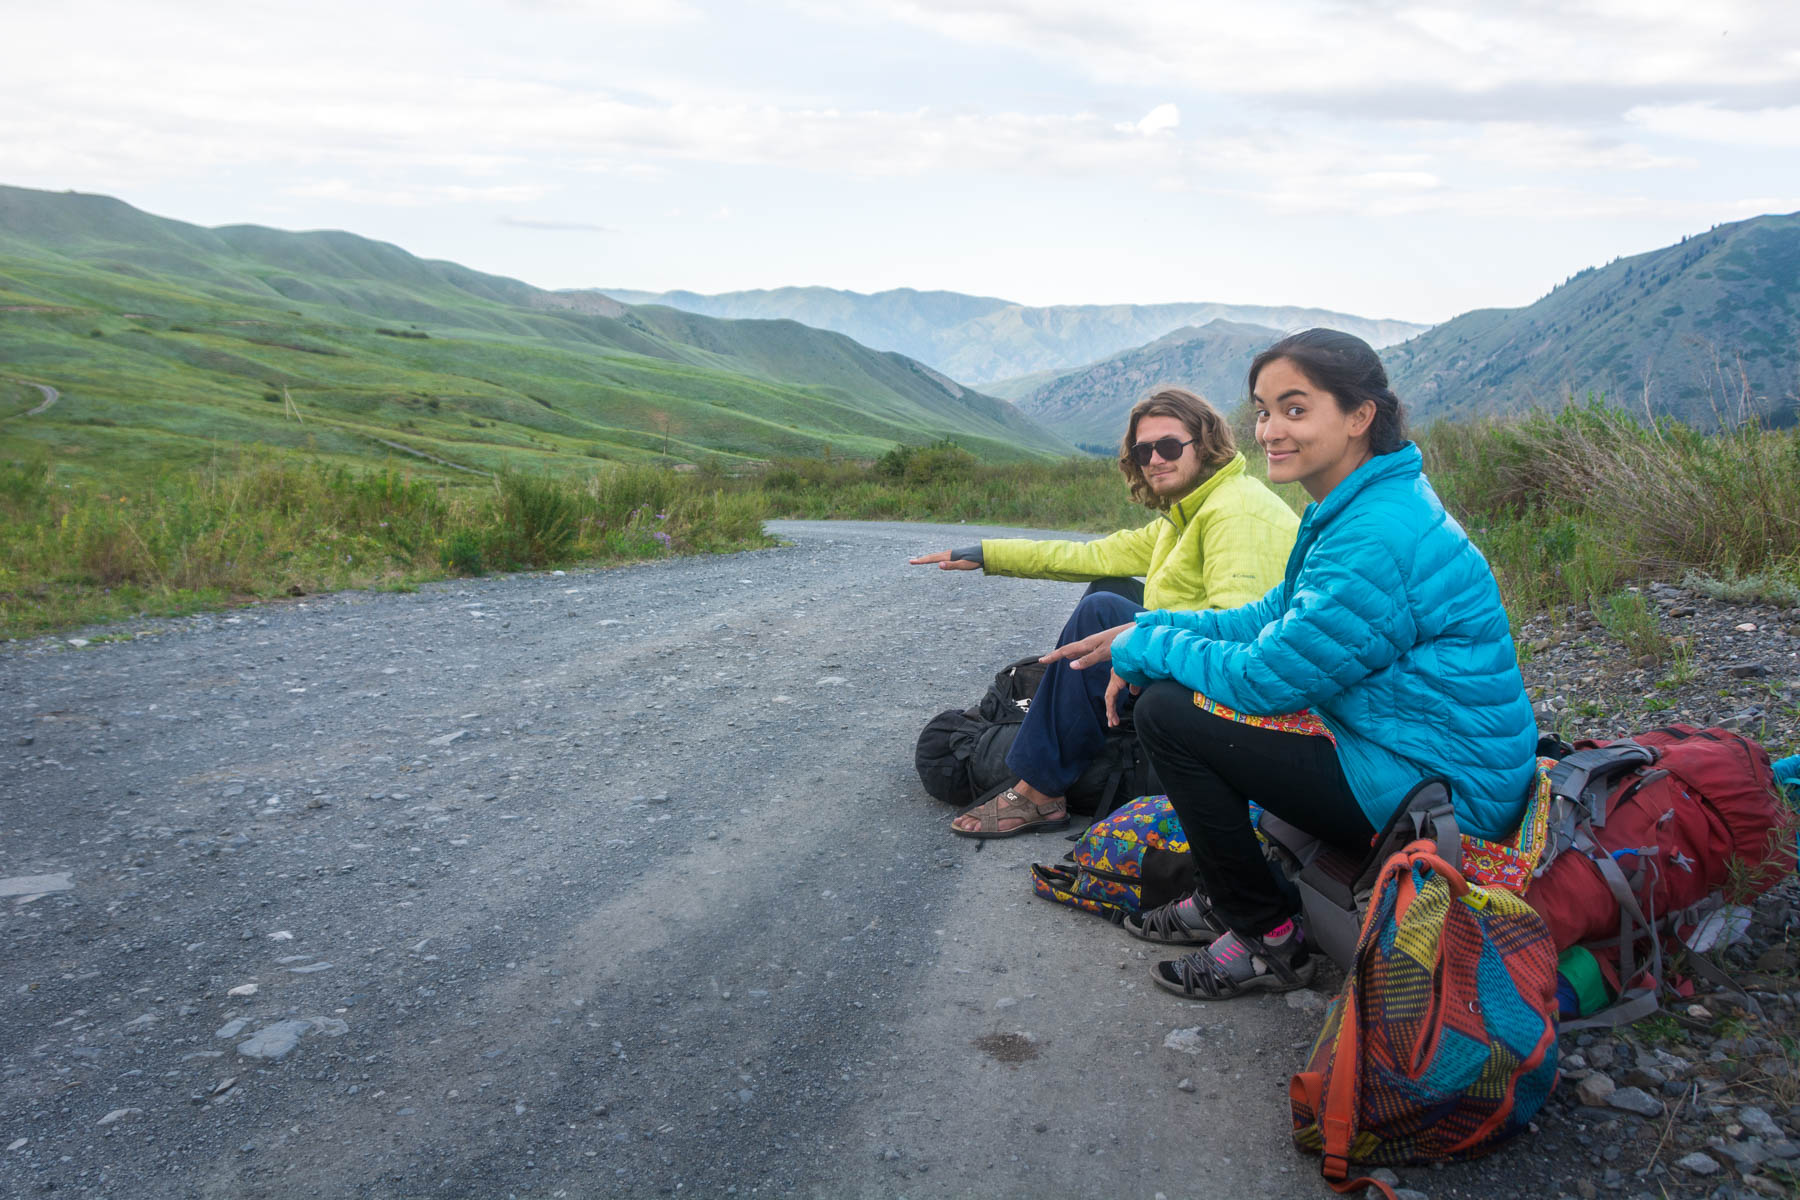 Hitchhiking in Kazakhstan - Lost With Purpose